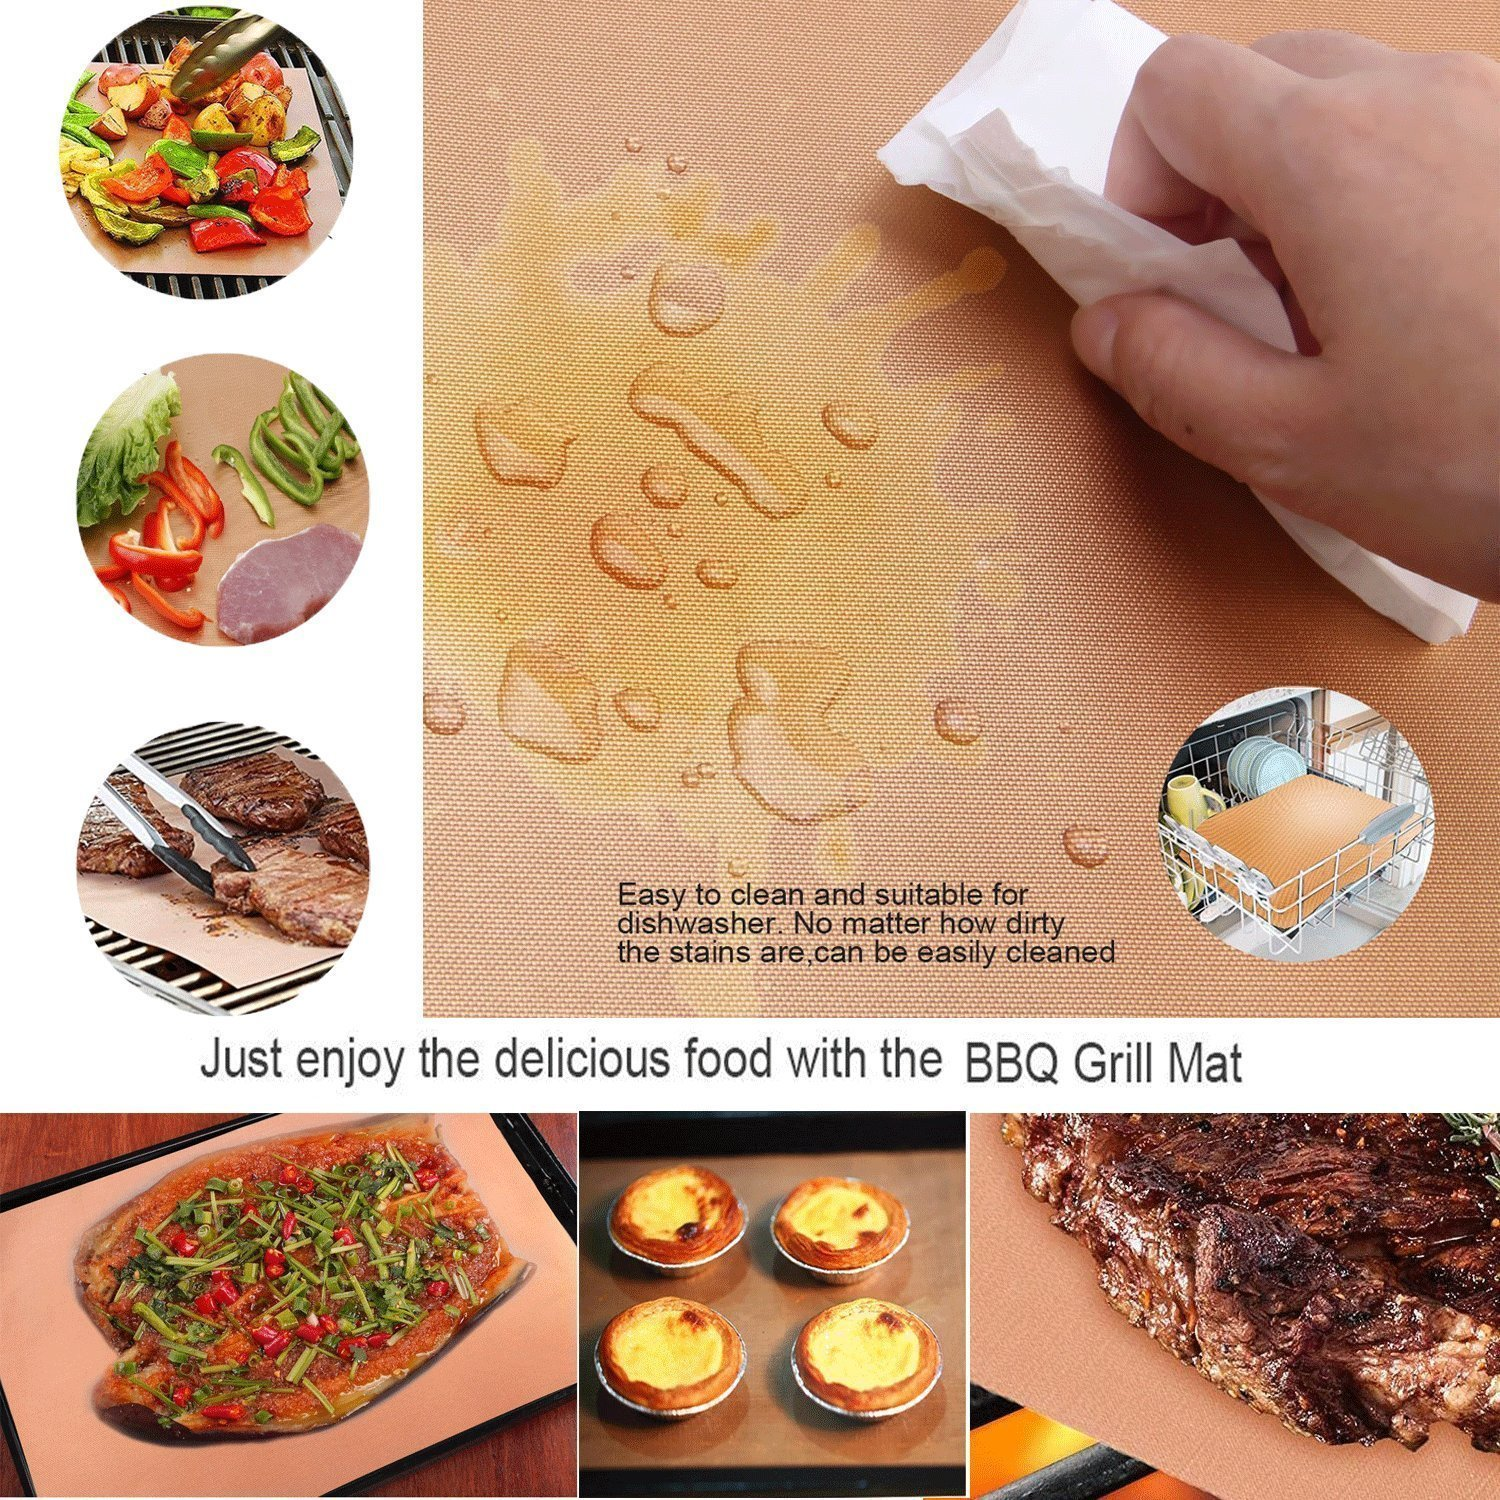 Bake Mat Set of 5 Non Stick BBQ Grill & Baking Mats - Reusable, Easy to Clean - PTFE Teflon Fiber Grill Roast Sheets for Gas, Charcoal, Electric Grill Gold (with 2 Brushes) by EEIEER (Image #6)